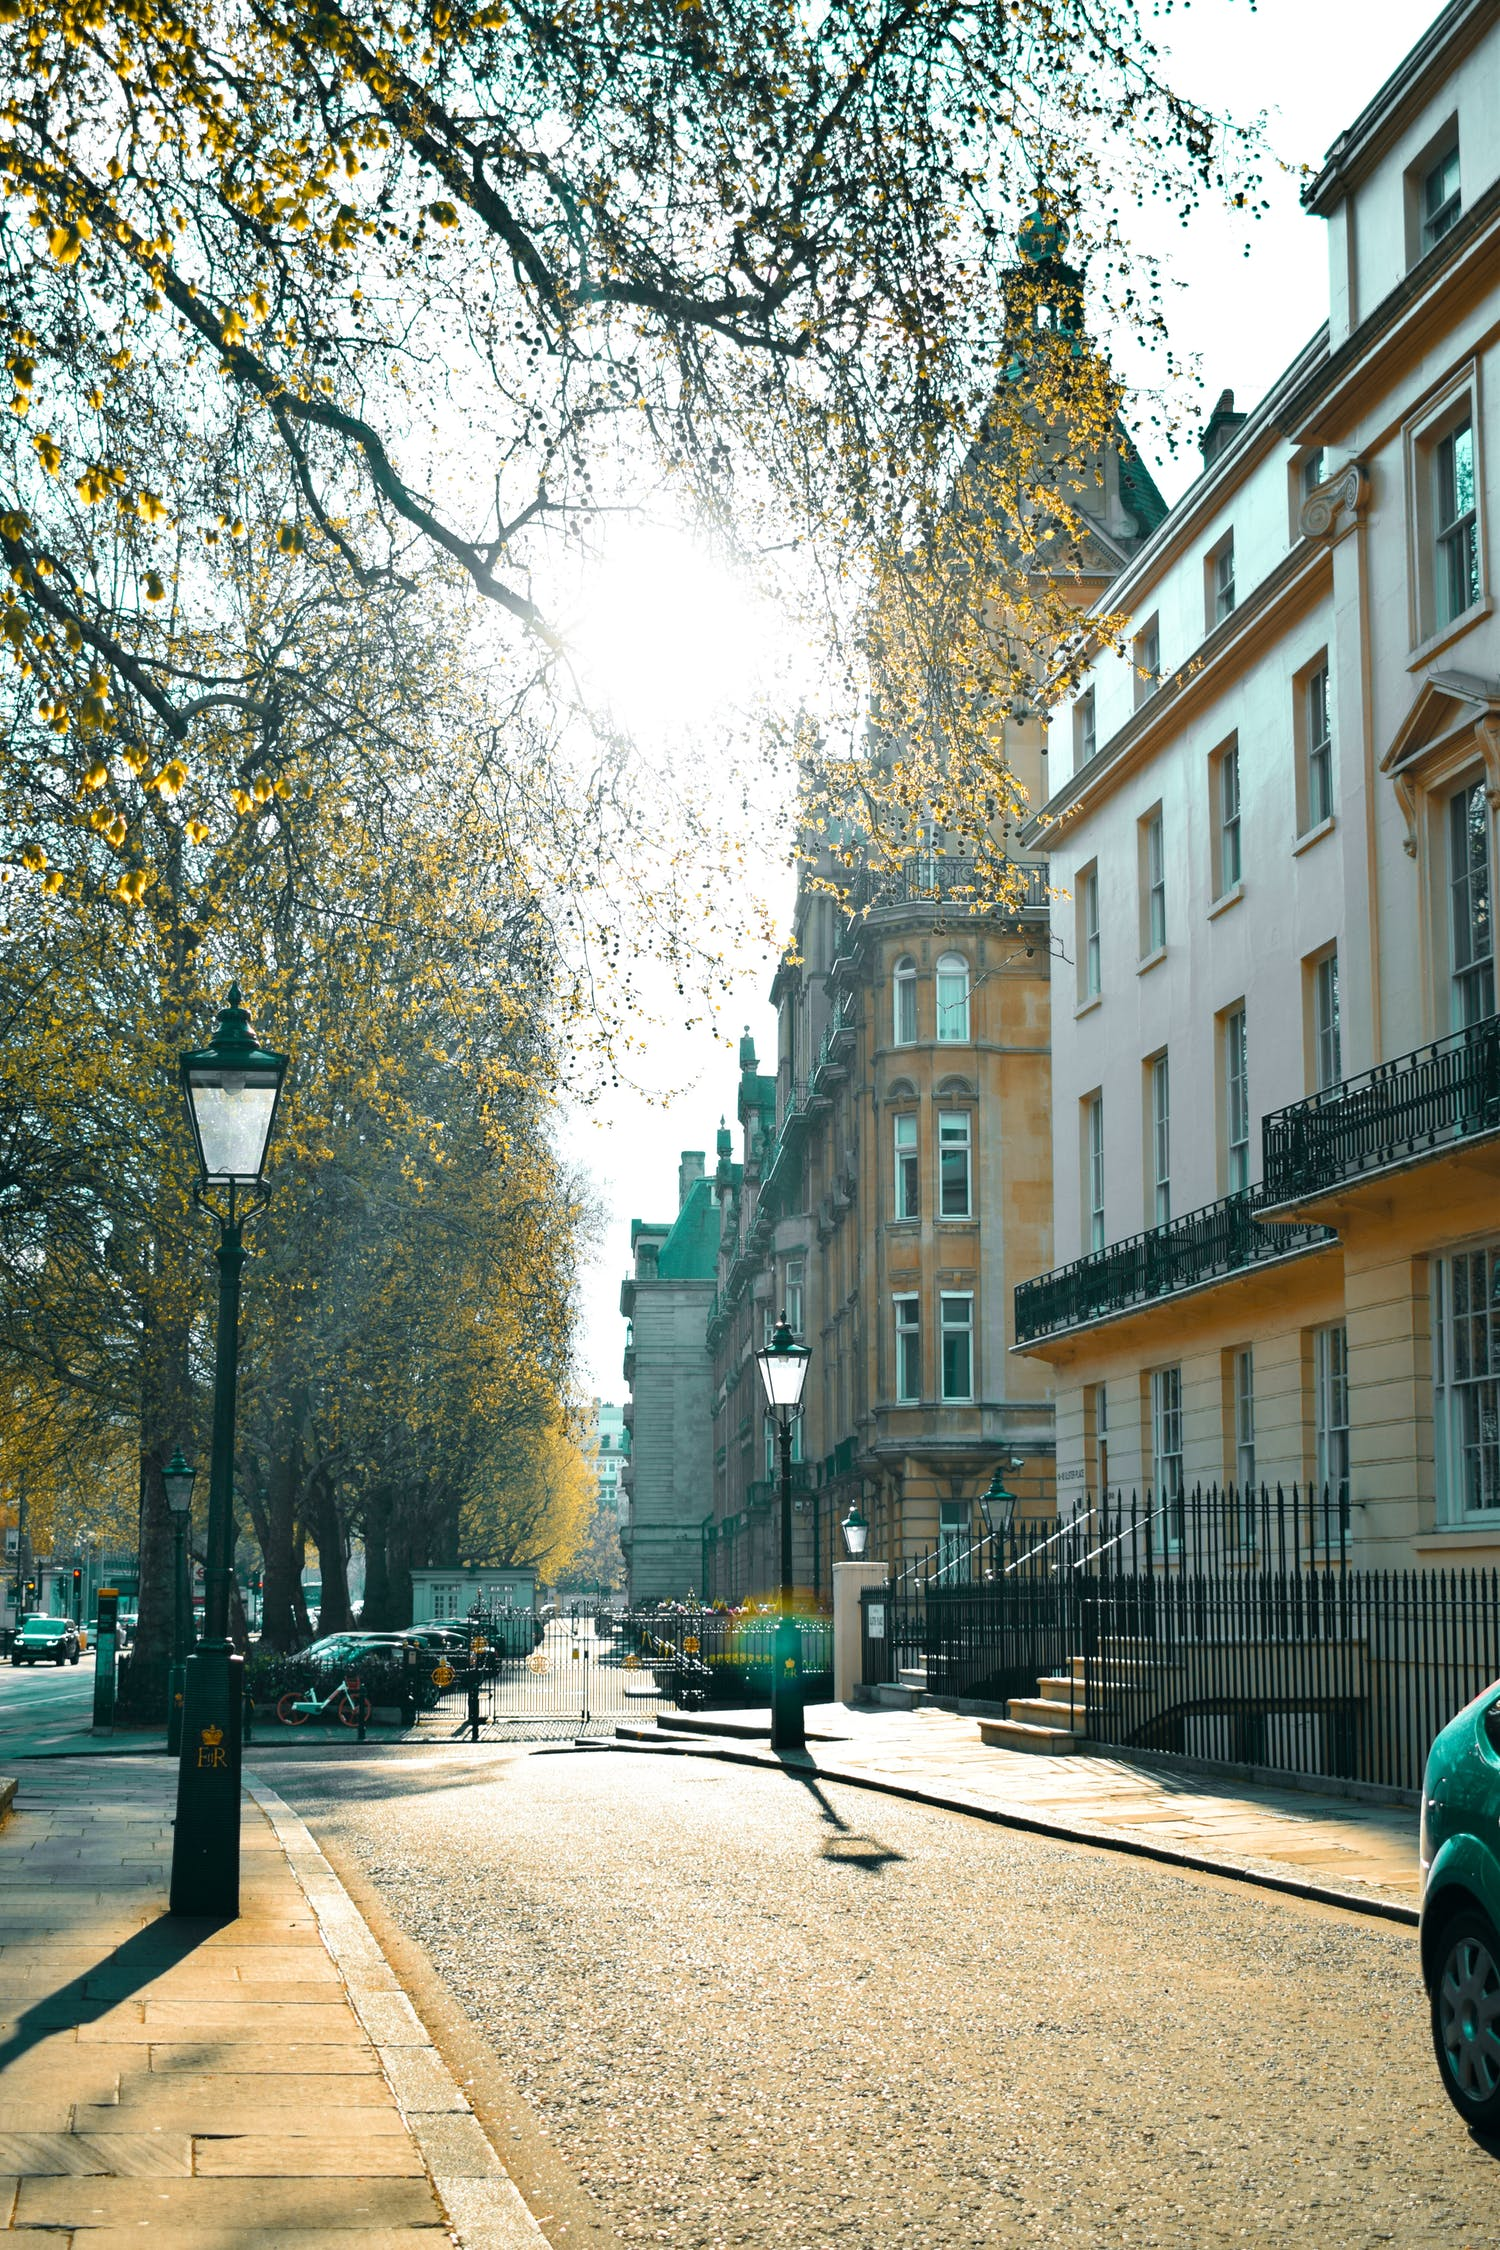 A street in London with tall buildings with autumn leaves